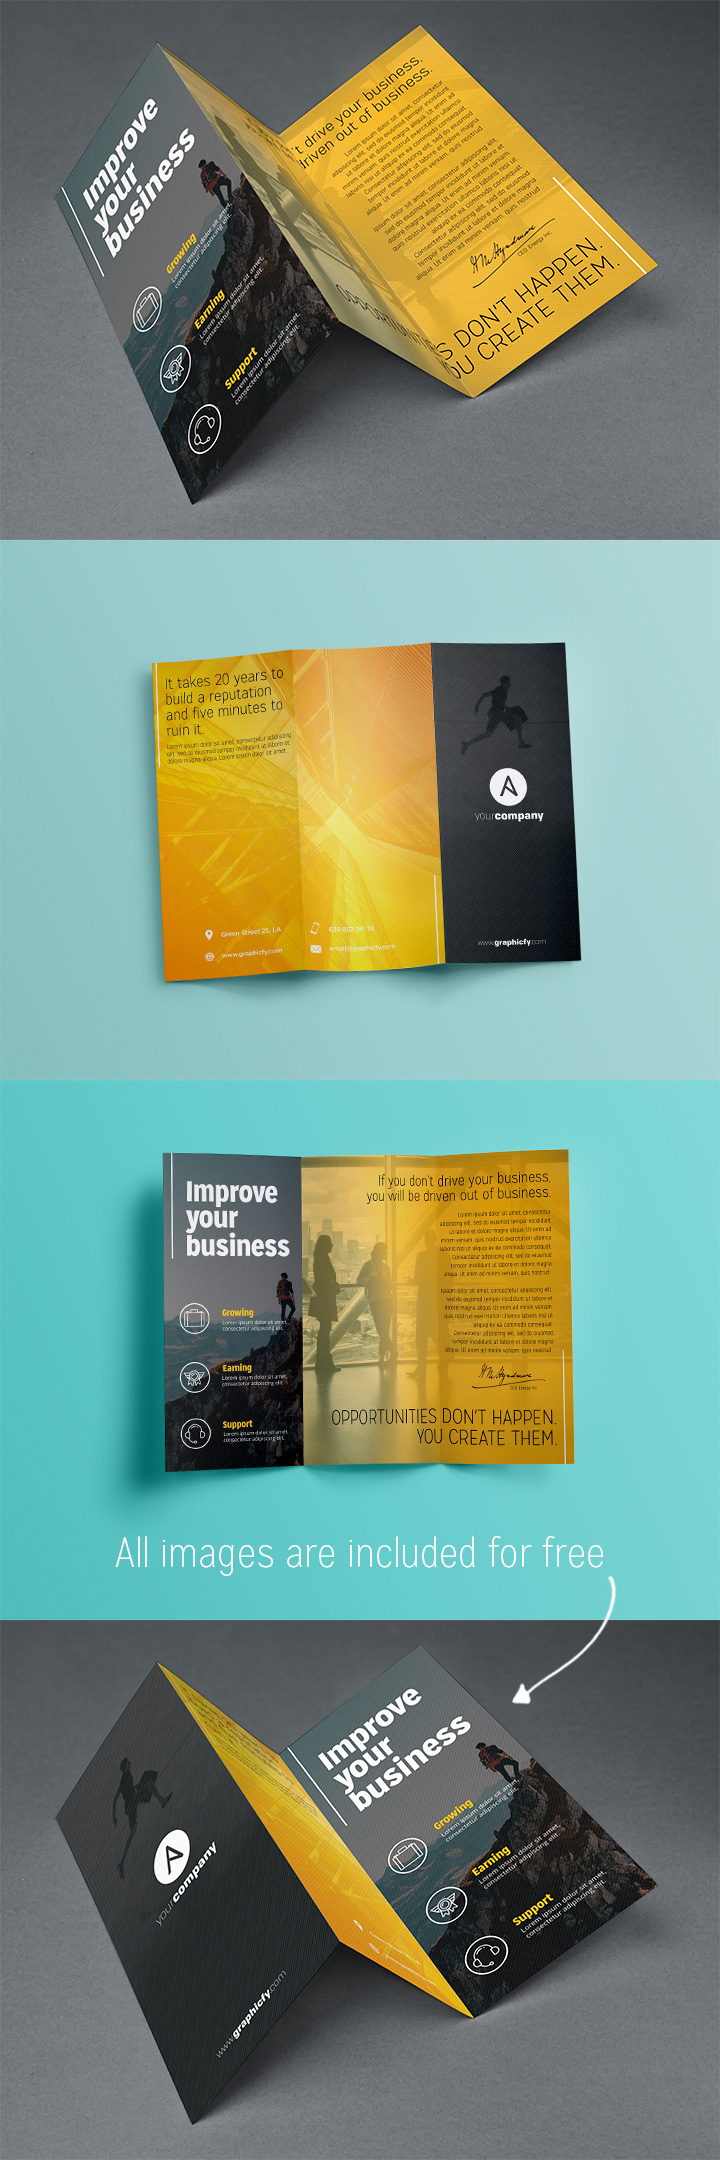 Tri fold brochure template psd brochure templates for Tri fold brochure template download